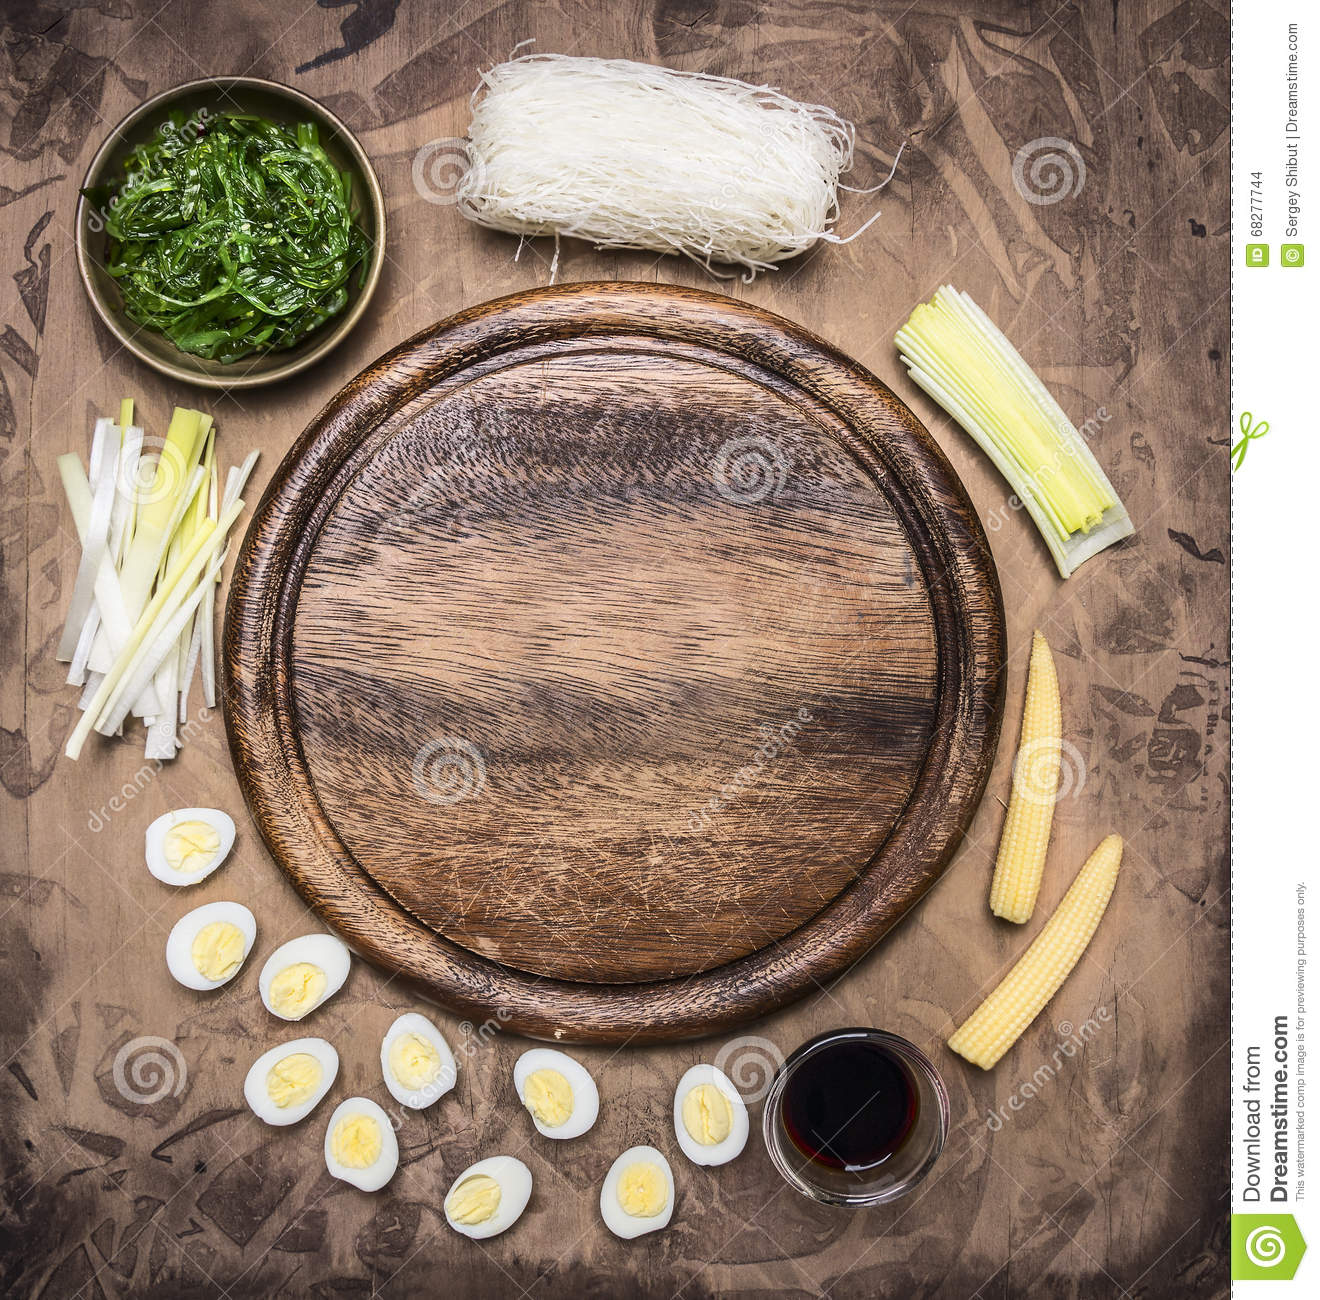 Ingredients for cooking Korean food glass noodles, chuka seaweed, boiled quail eggs, ginger, corn laid out around cutting board